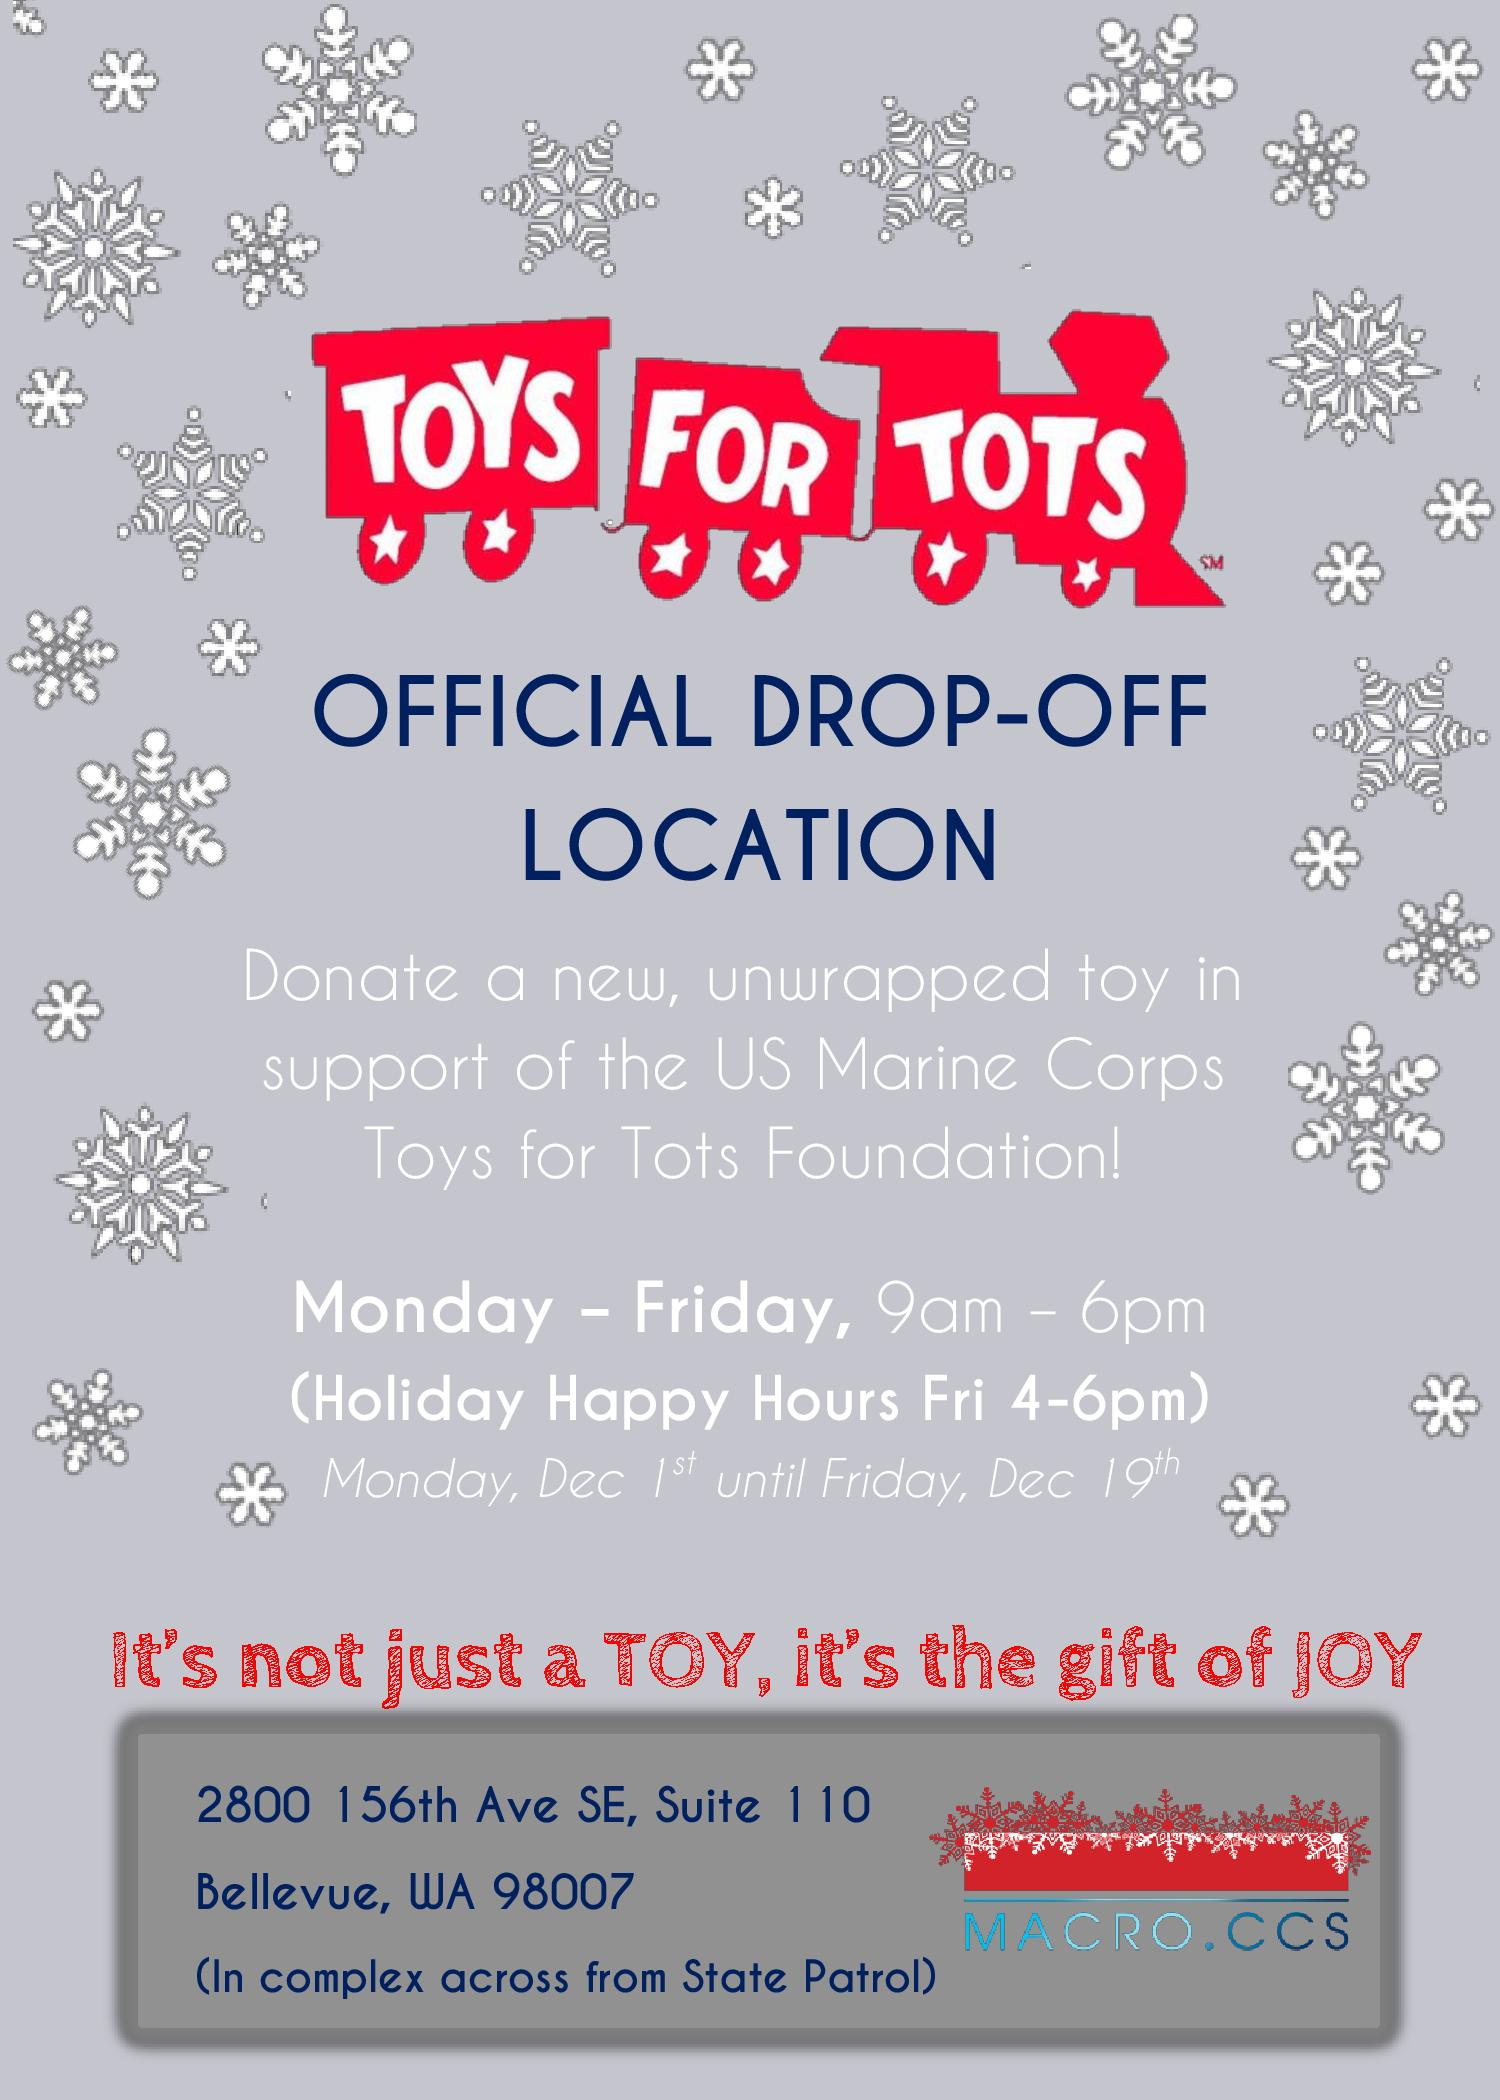 Form 501c3 Toys For Tots : Events news archives macroccs